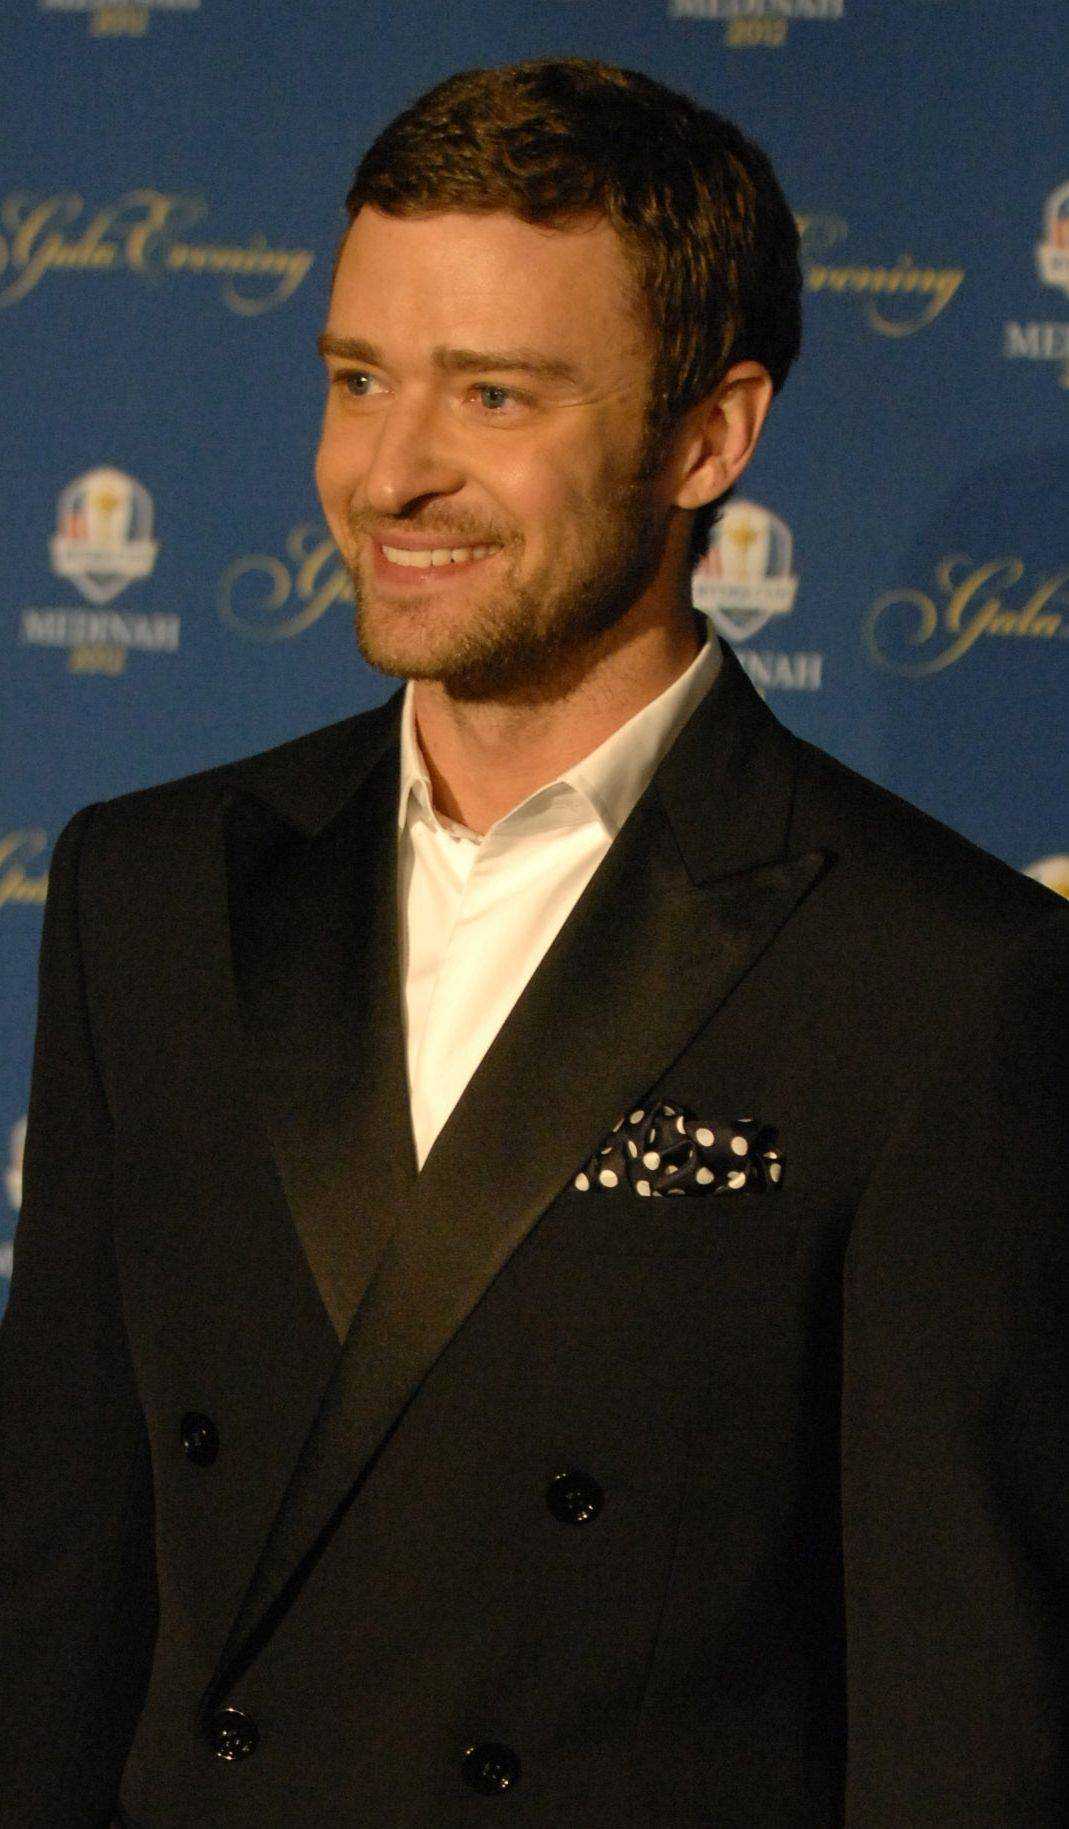 Justin Timberlake walks the 39th Ryder Cup Gala red carpet at the Akoo Theatre in Rosemont Wednesday. Timberlake is the official Team USA liaison and hosted a performance filled with music, comedy and introduction of Team USA and Team Europe.